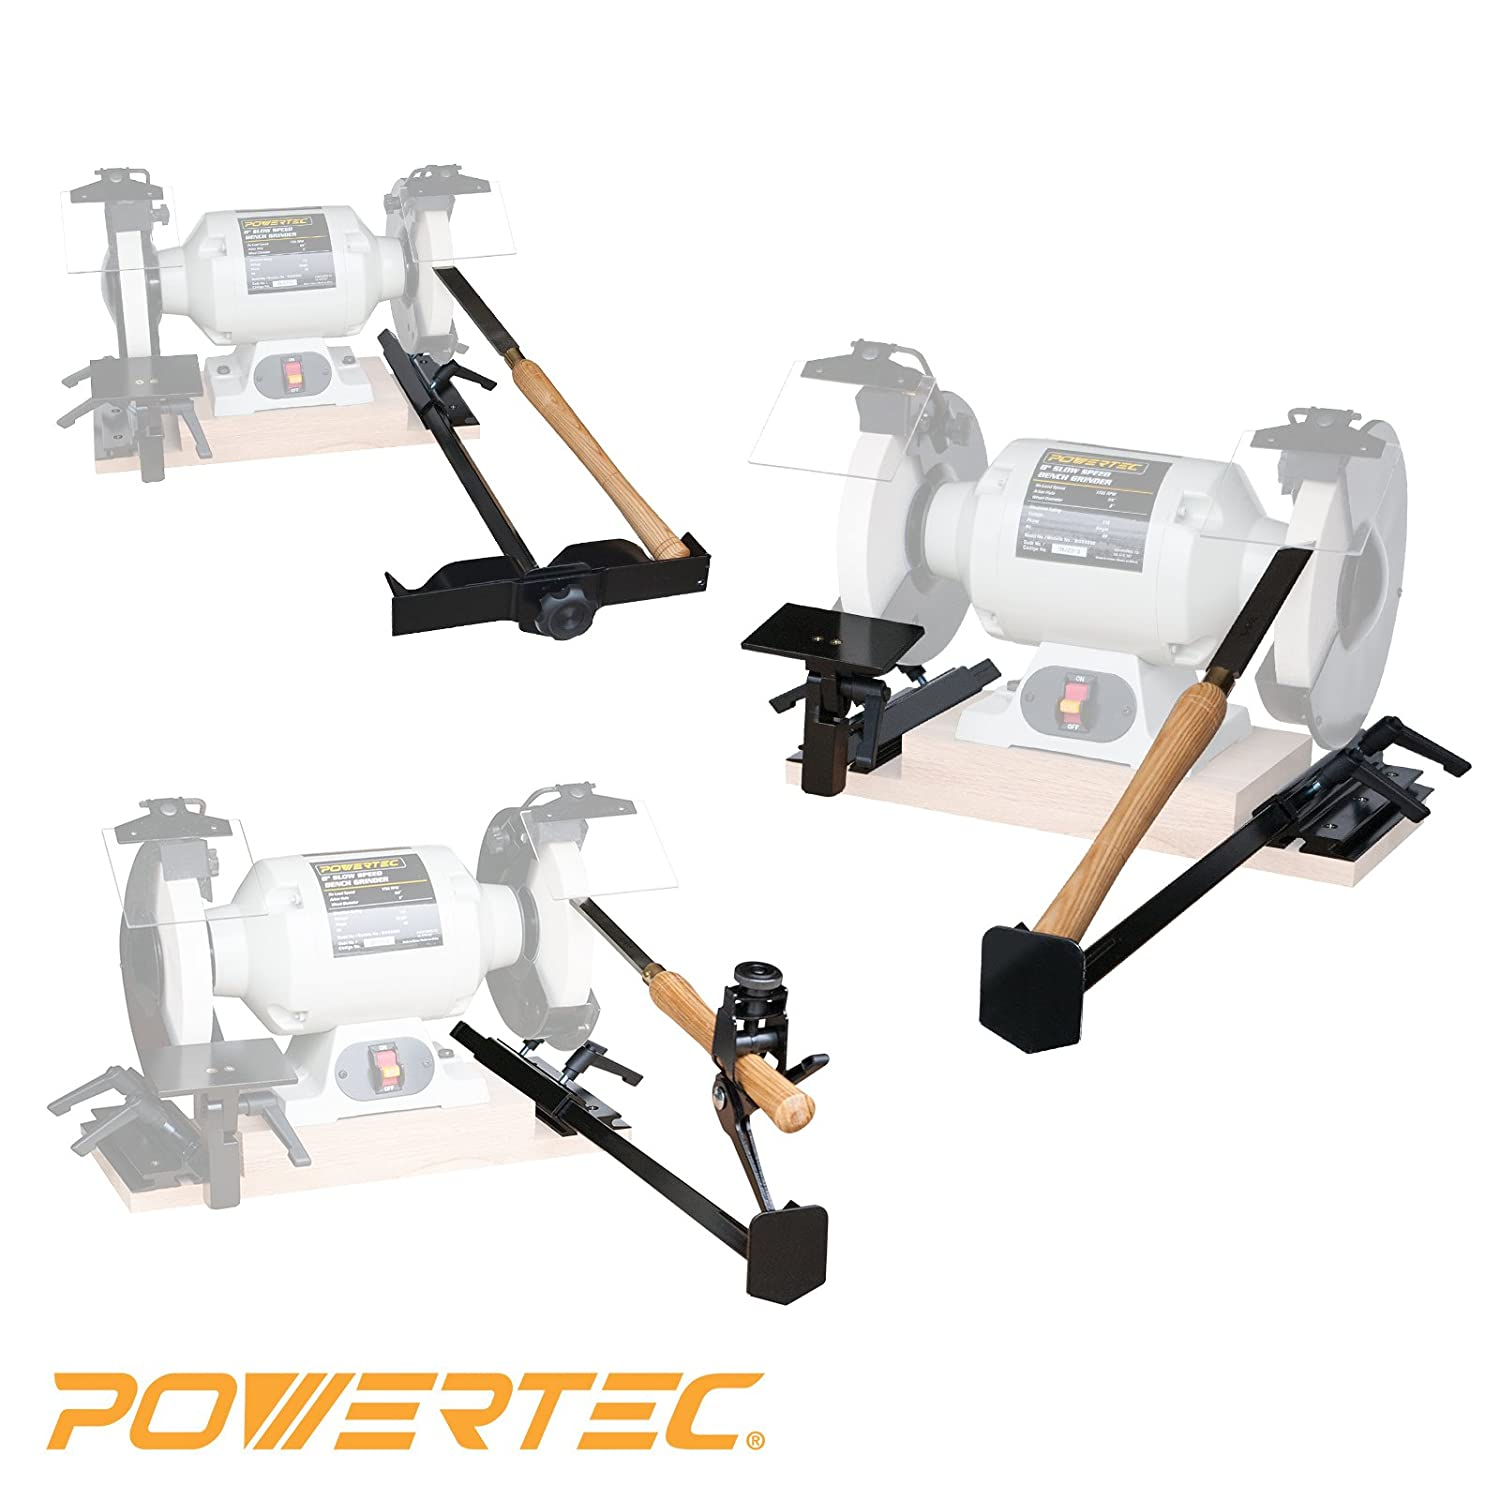 POWERTEC 71021 Bench Grinder Sharpening Jig Kit, Value Pack 4-In-1